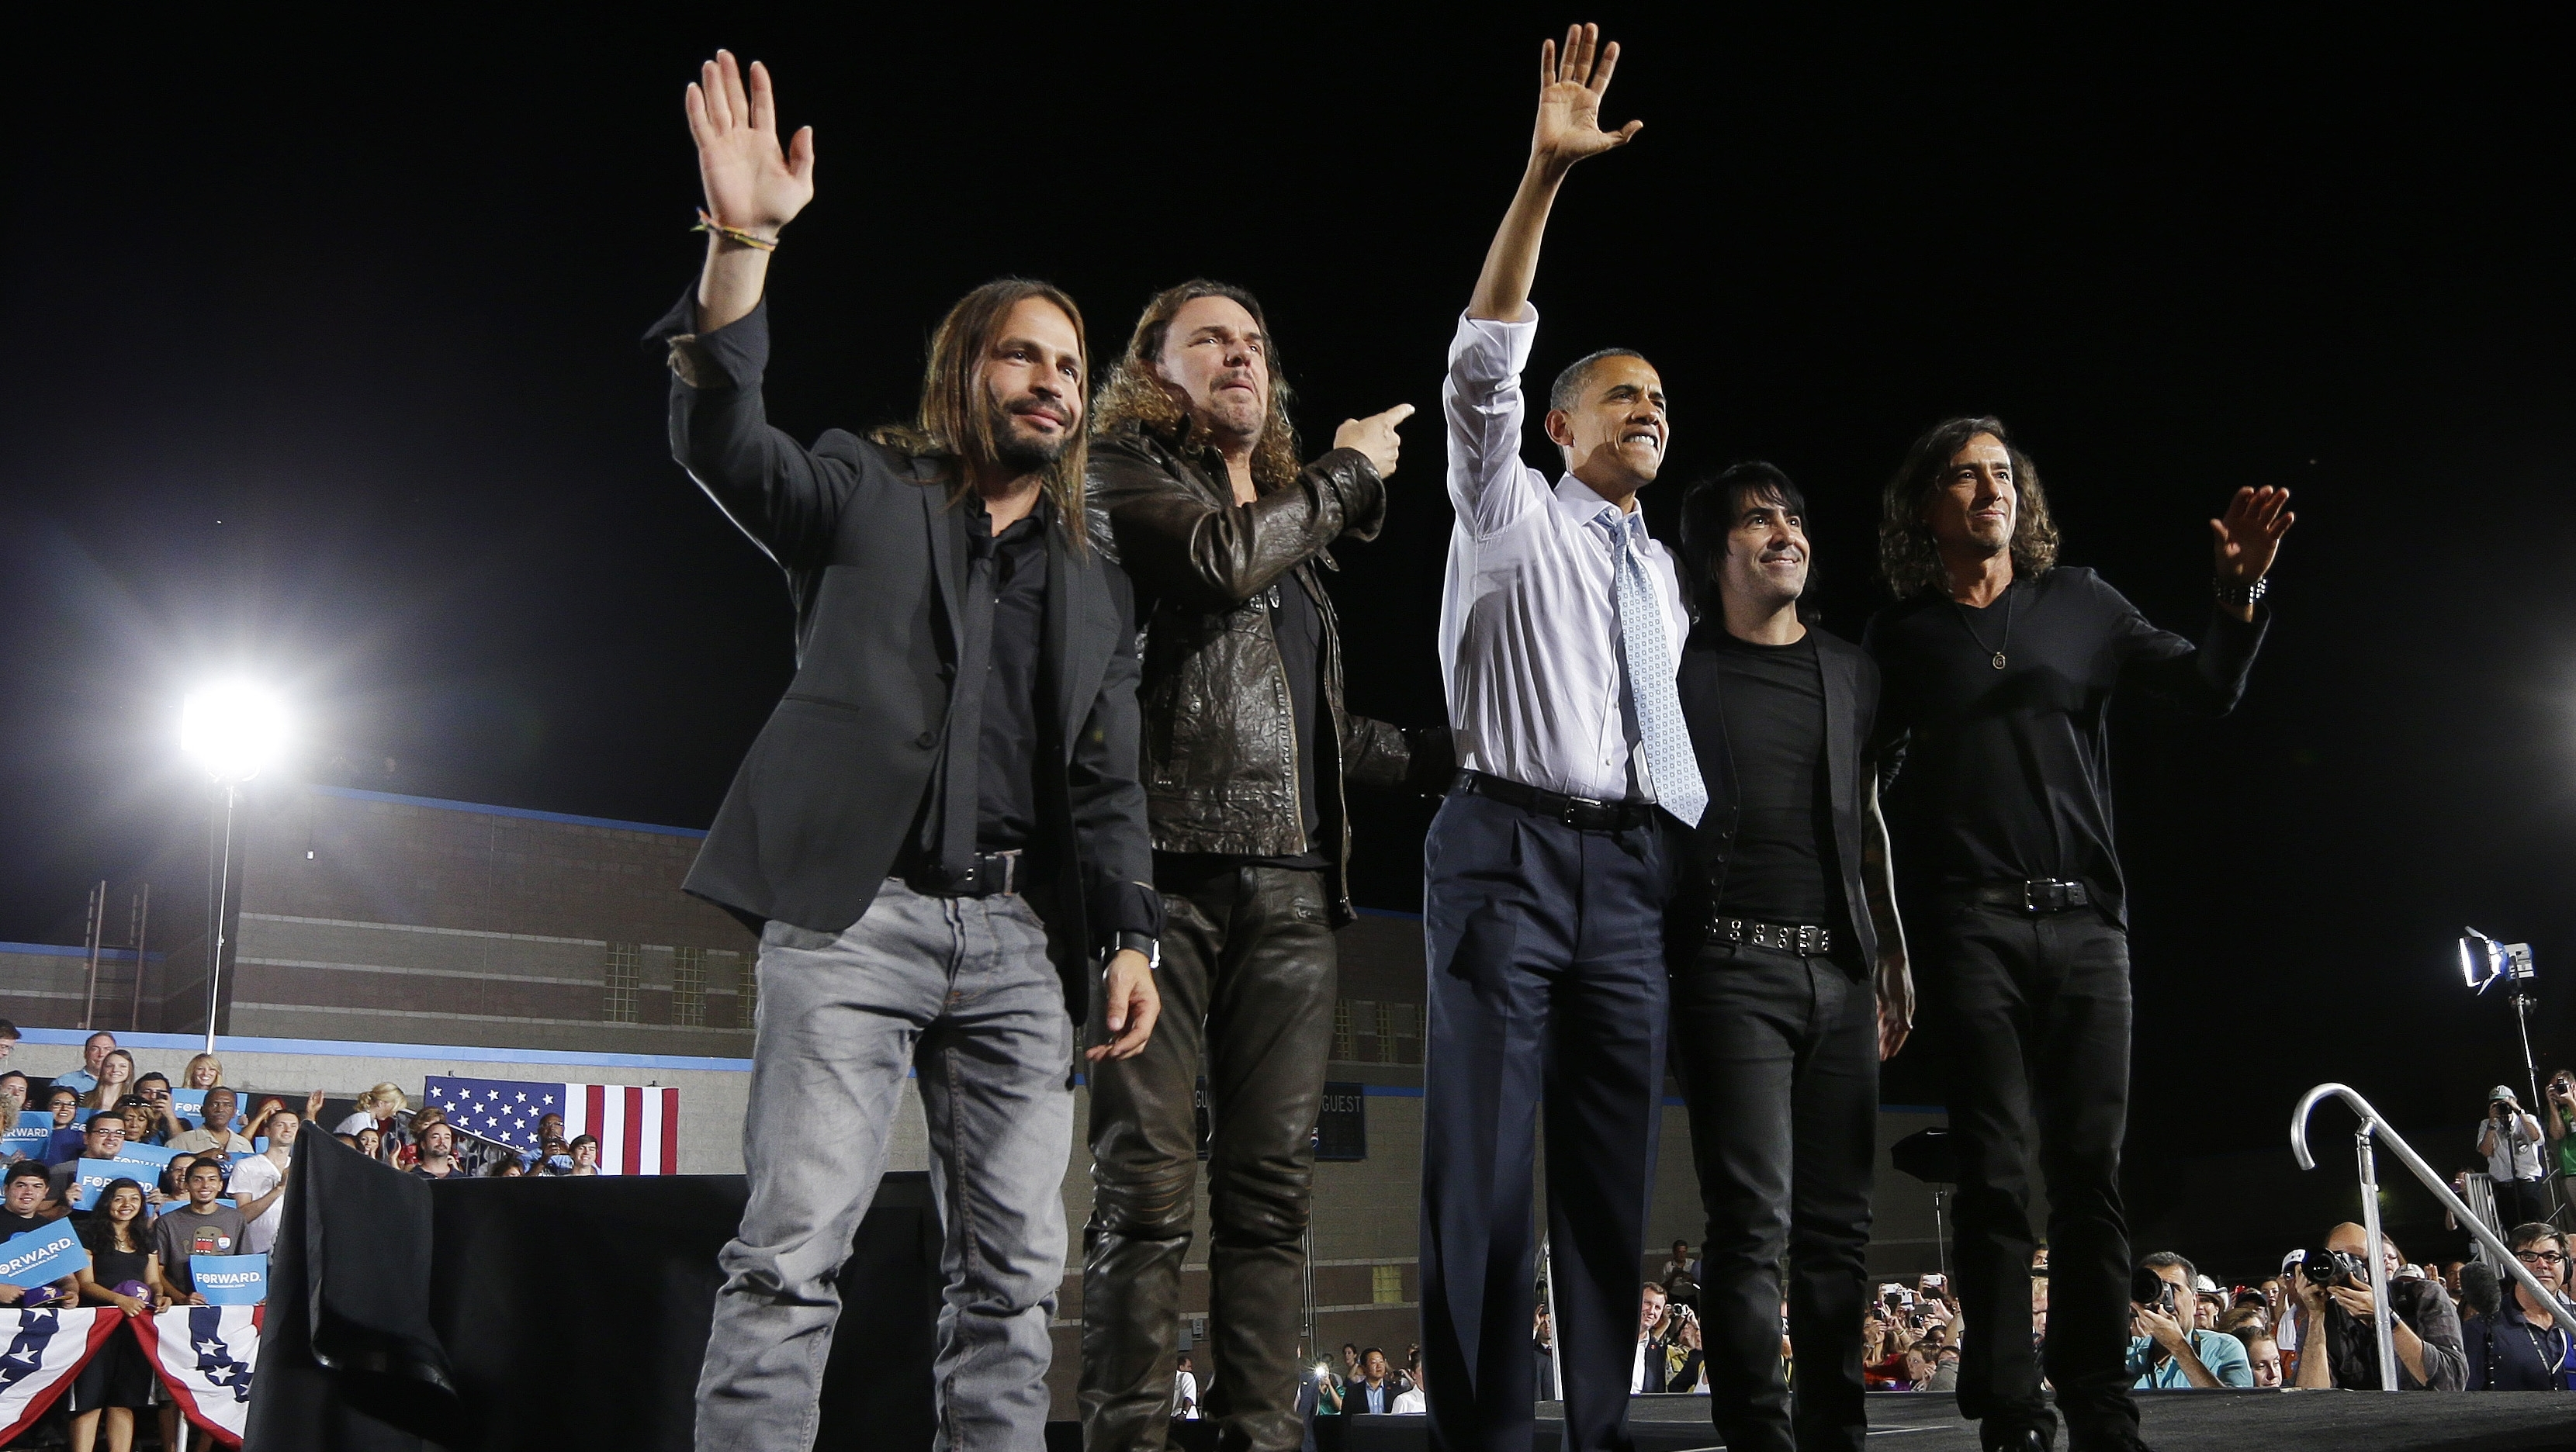 PHOTO:President Barack Obama, center, on stage with members of the Mexican Rock Band Mana, during a campaign event in Desert Pines High School, Sunday, Sept. 30, 2012 in Las Vegas.